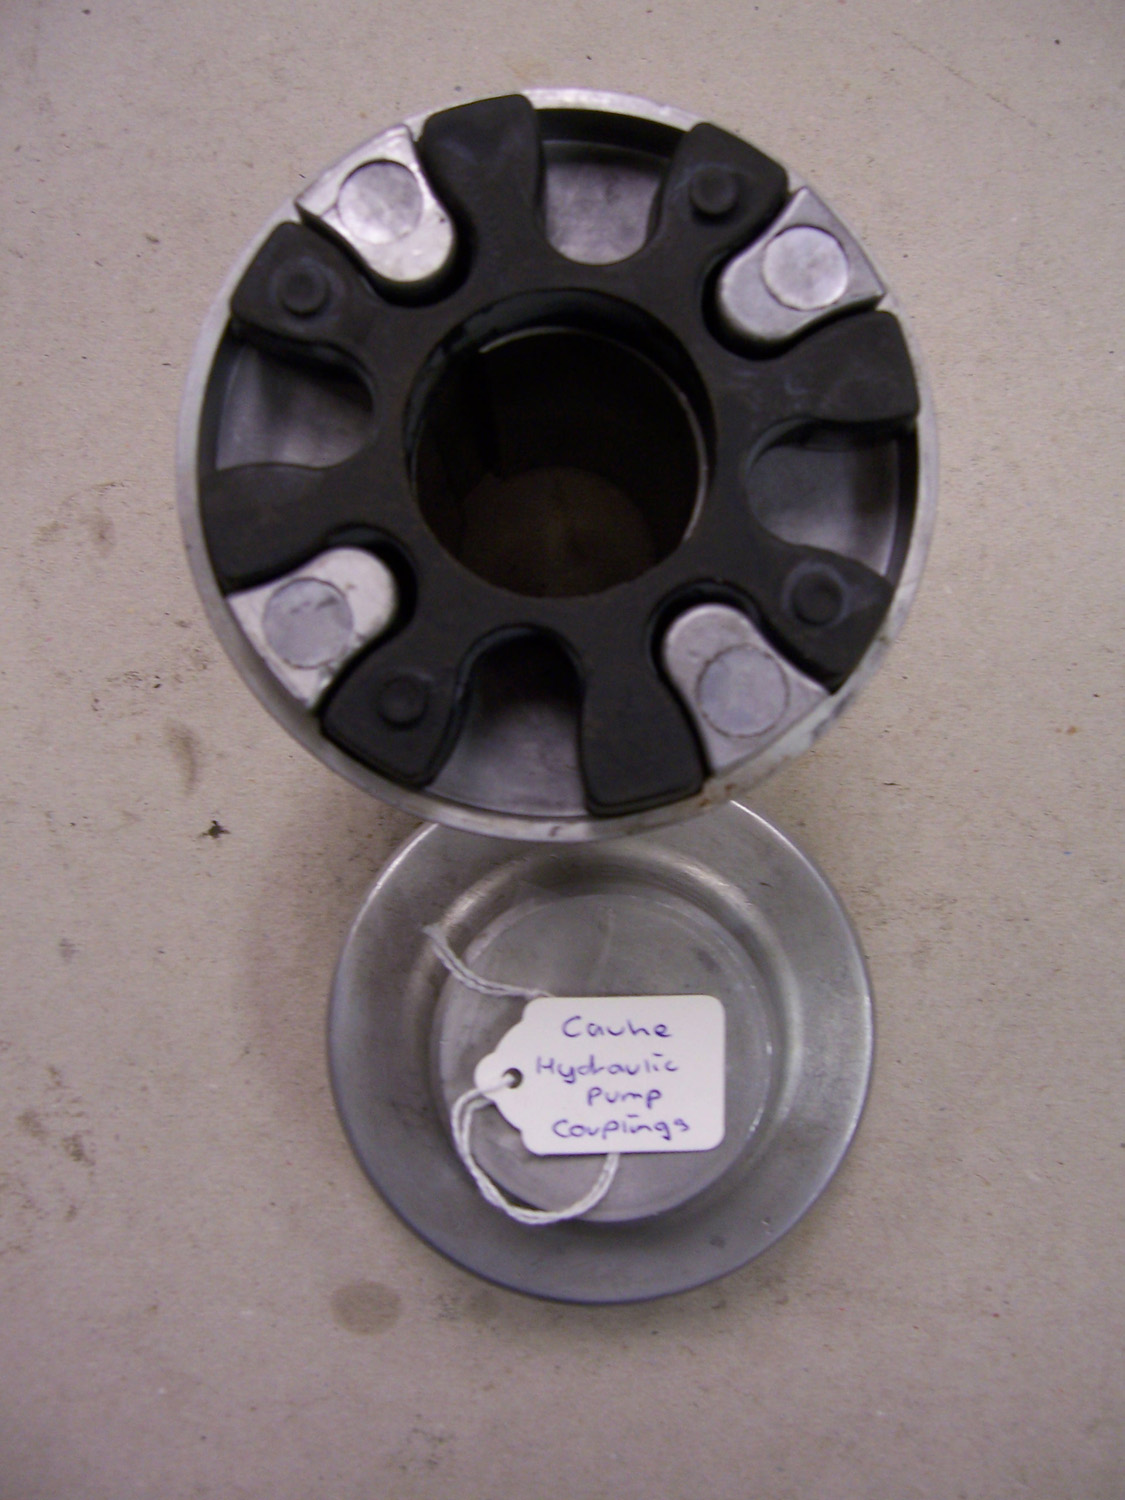 Cauhe Hydraulic Pump Coupling